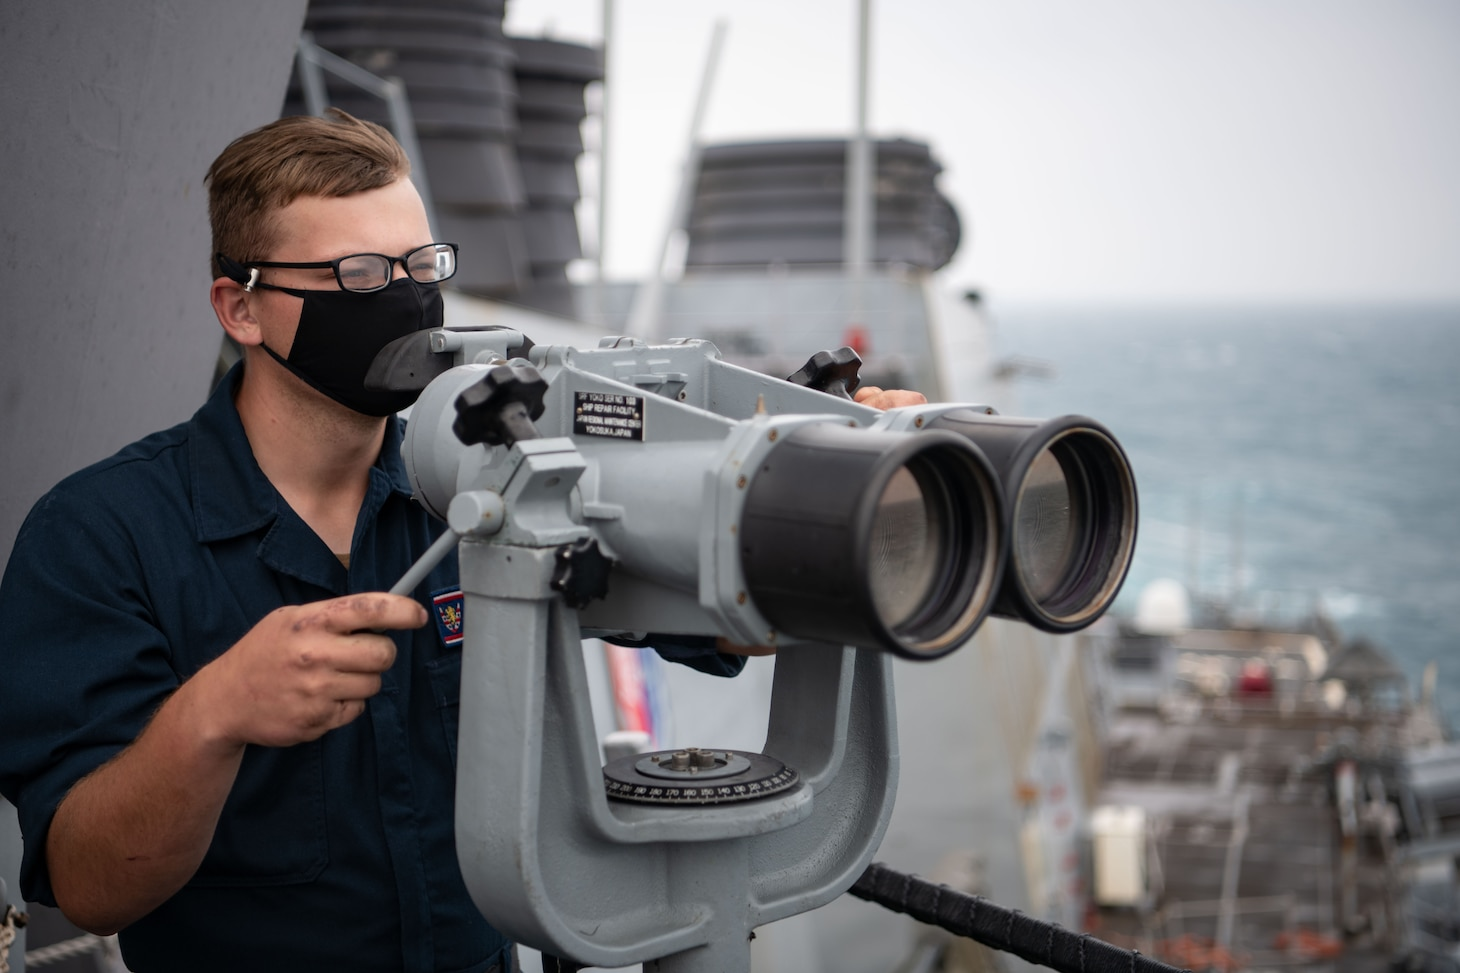 TAIWAN STRAIT (Nov. 20, 2020) – Boatswain's Mate Seaman Evan Sand, from Clearwater, Minn., uses the ship's binoculars to search for contacts on the bridge-wing of the guided-missile destroyer USS Barry (DDG 62) as the ship conducts routine underway operations in the Taiwan Strait. Barry is assigned to Destroyer Squadron (DESRON) 15, the Navy's largest forward-deployed DESRON and the U.S. 7th Fleet's principal surface force, forward-deployed to the U.S. 7th Fleet area of operations in support of a free and open Indo-Pacific. (U.S. Navy photo by Lieutenant Junior Grade Samuel Hardgrove)